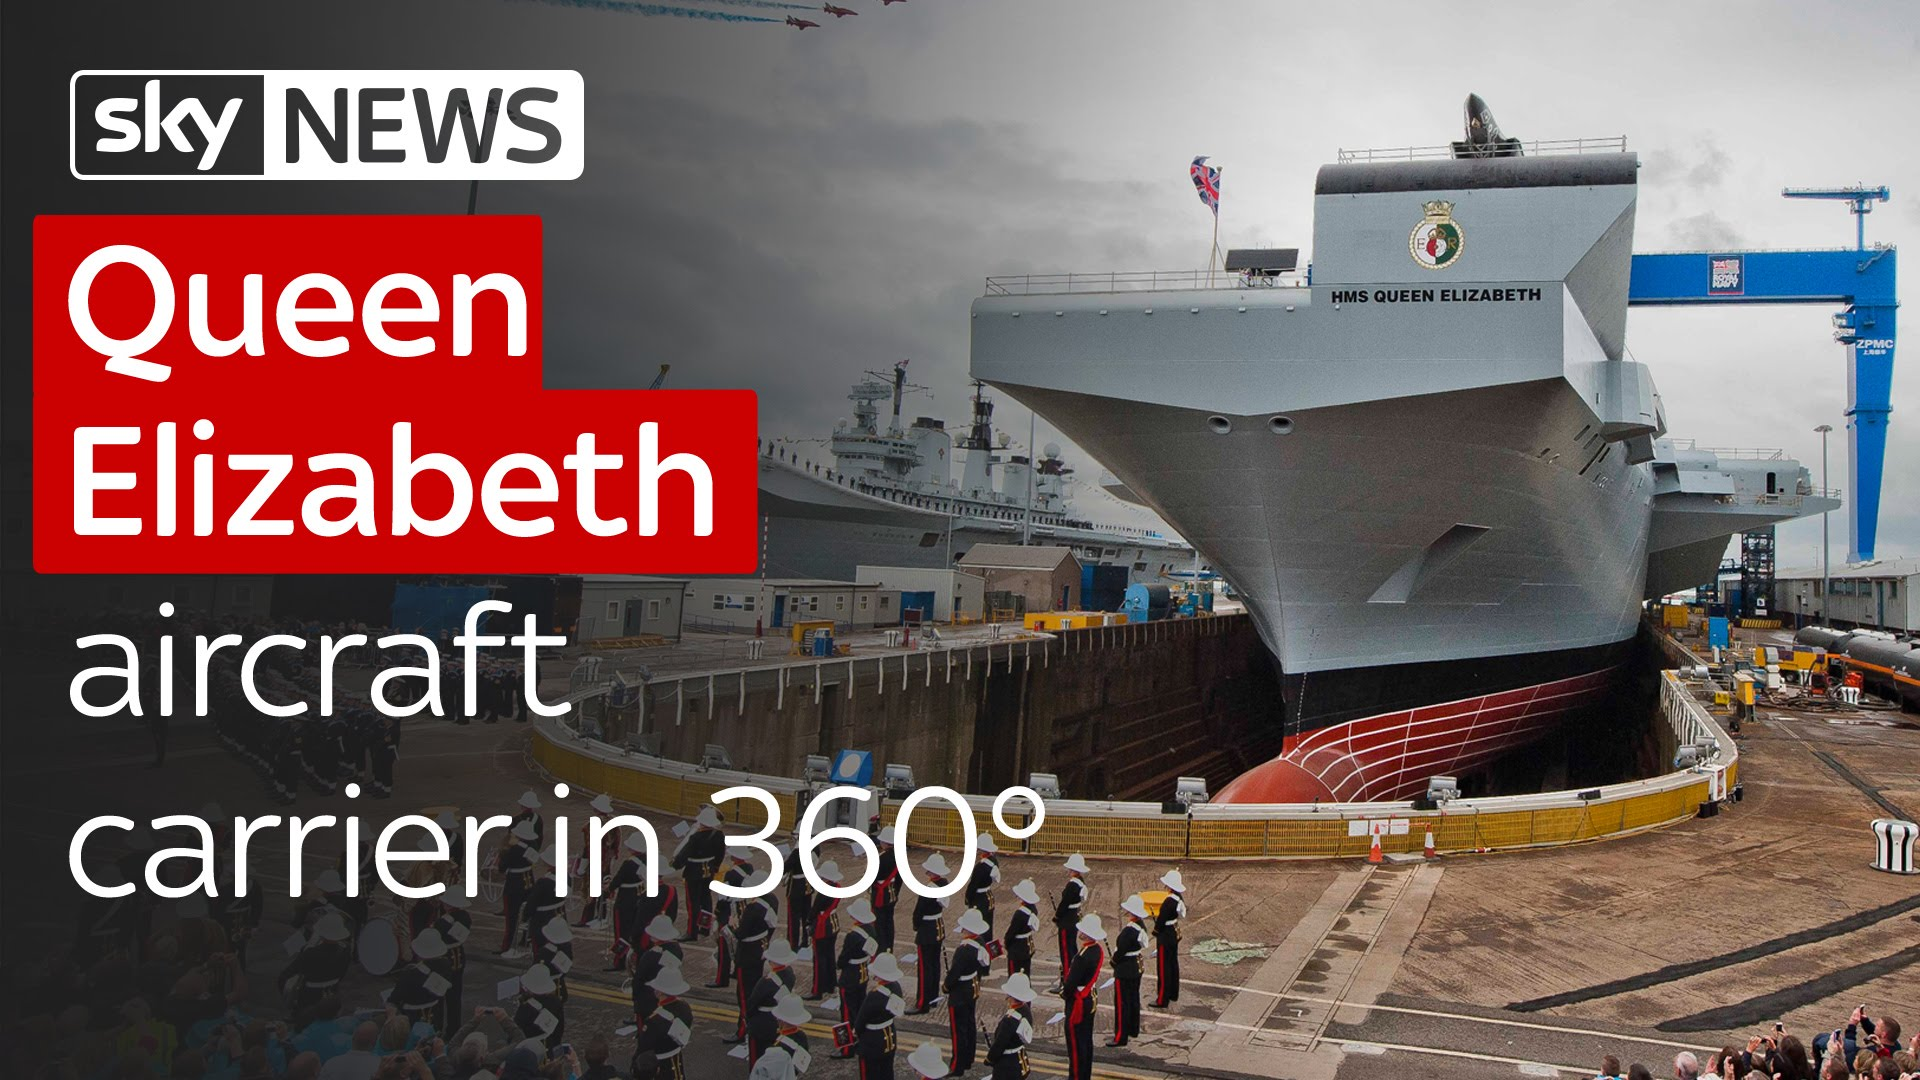 Queen Elizabeth aircraft carrier in 360° 3